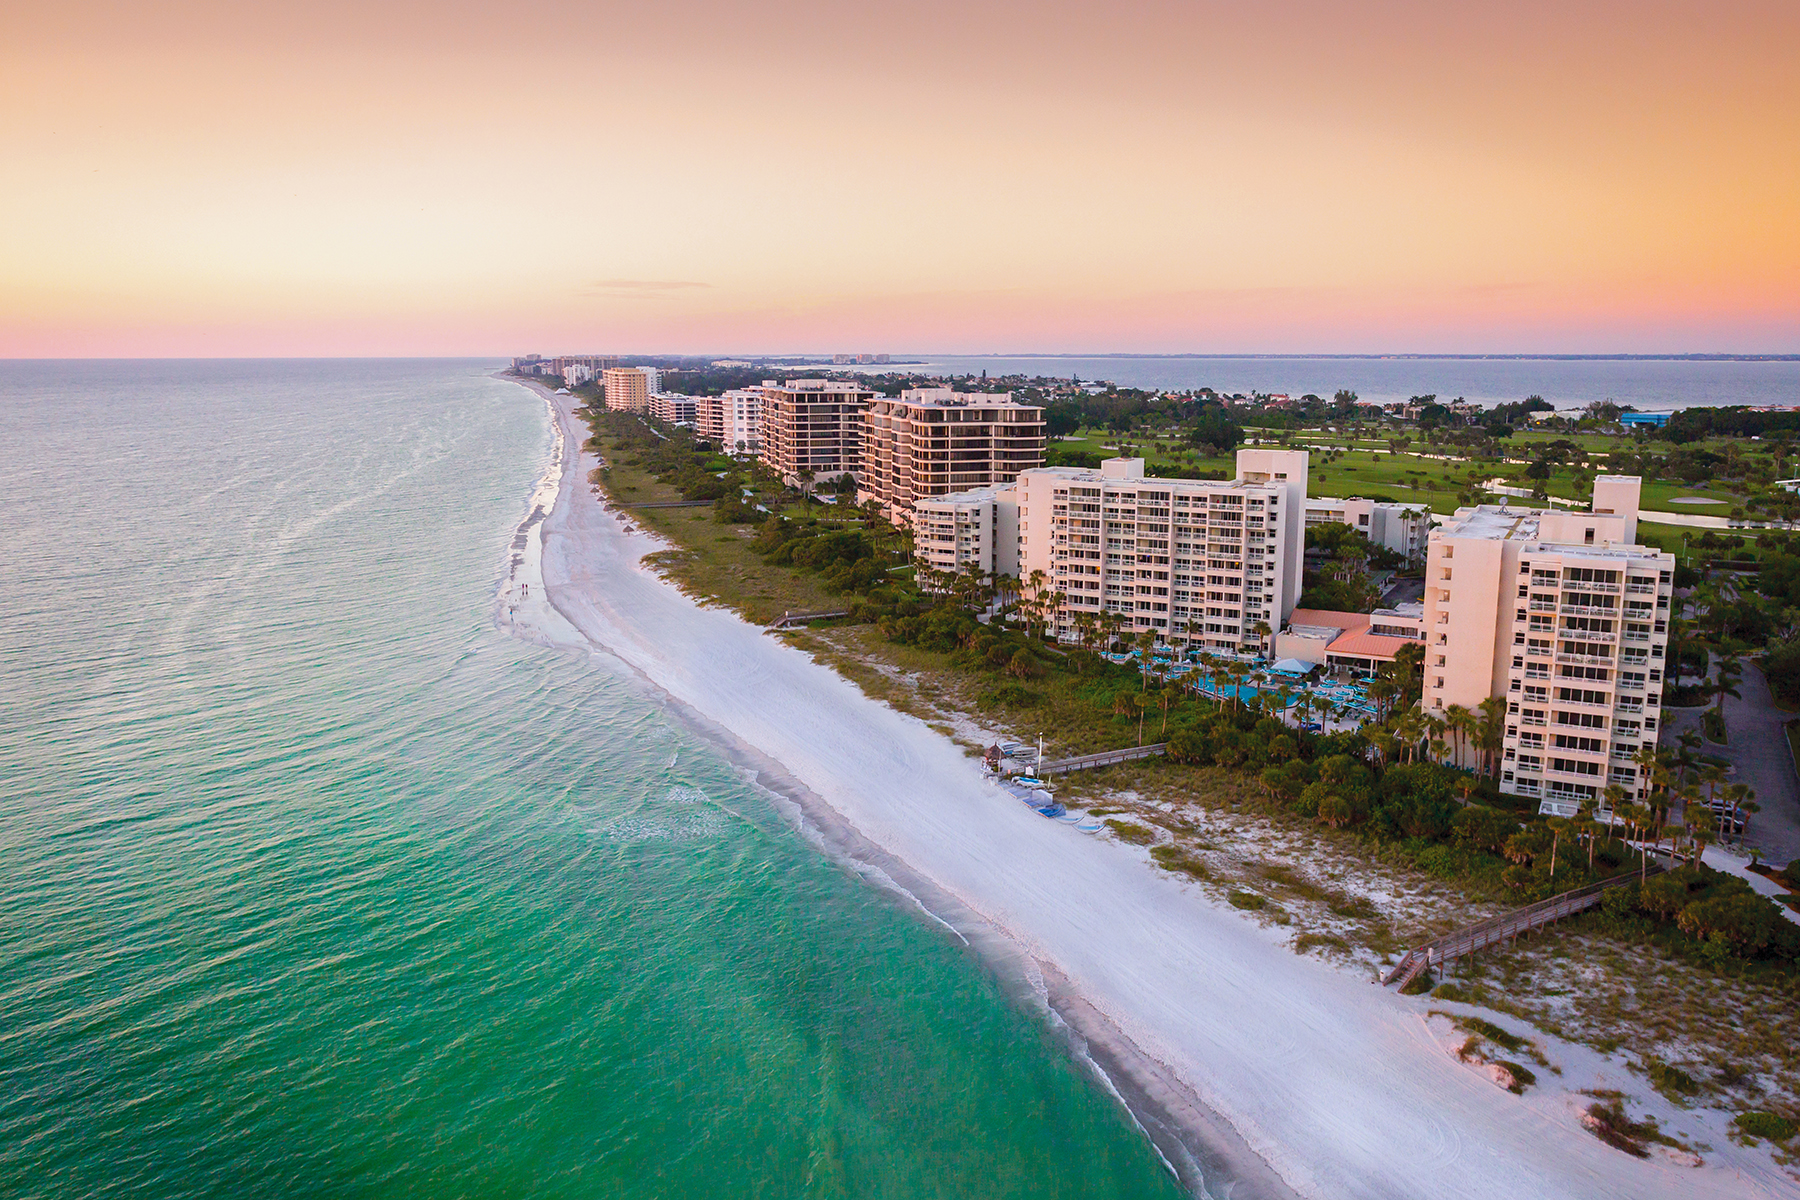 Condominium for Sale at INN ON THE BEACH 250 Sands Point Rd 5304 Longboat Key, Florida, 34228 United States